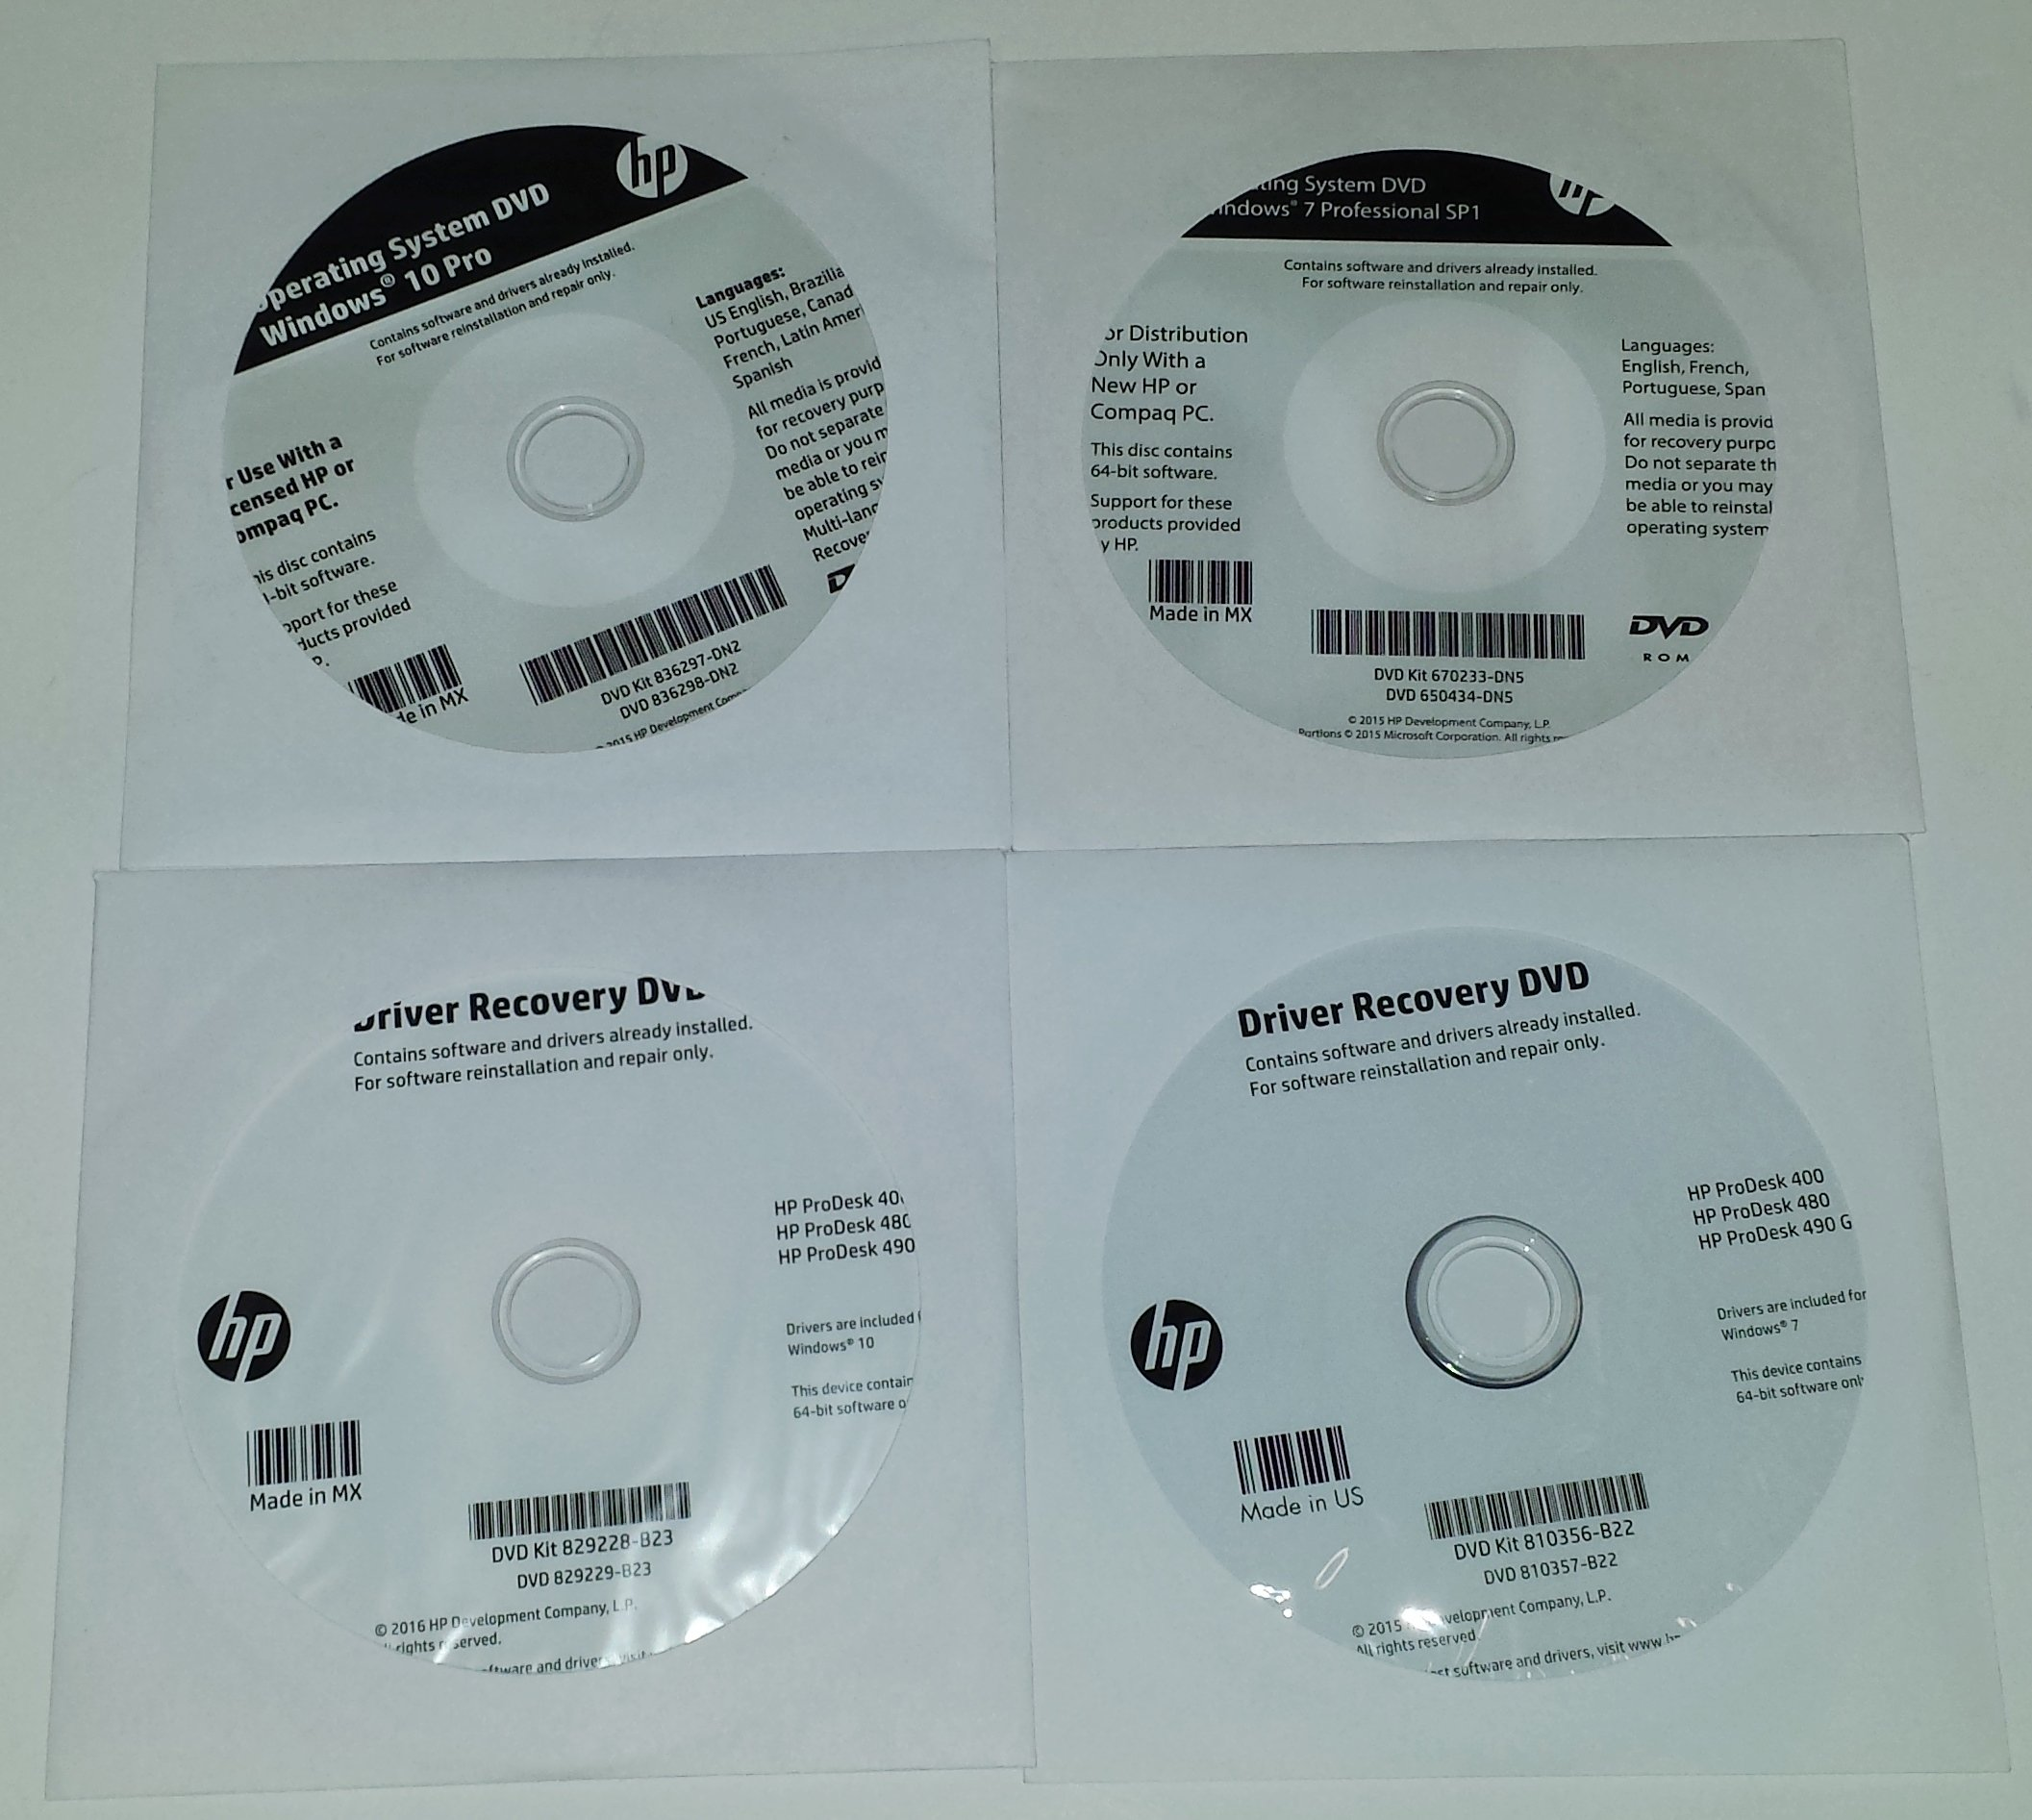 Windows 7 Pro OS and Windows 10 Pro OS and Driver DVDs for HP ProDesk 400, 480, 490